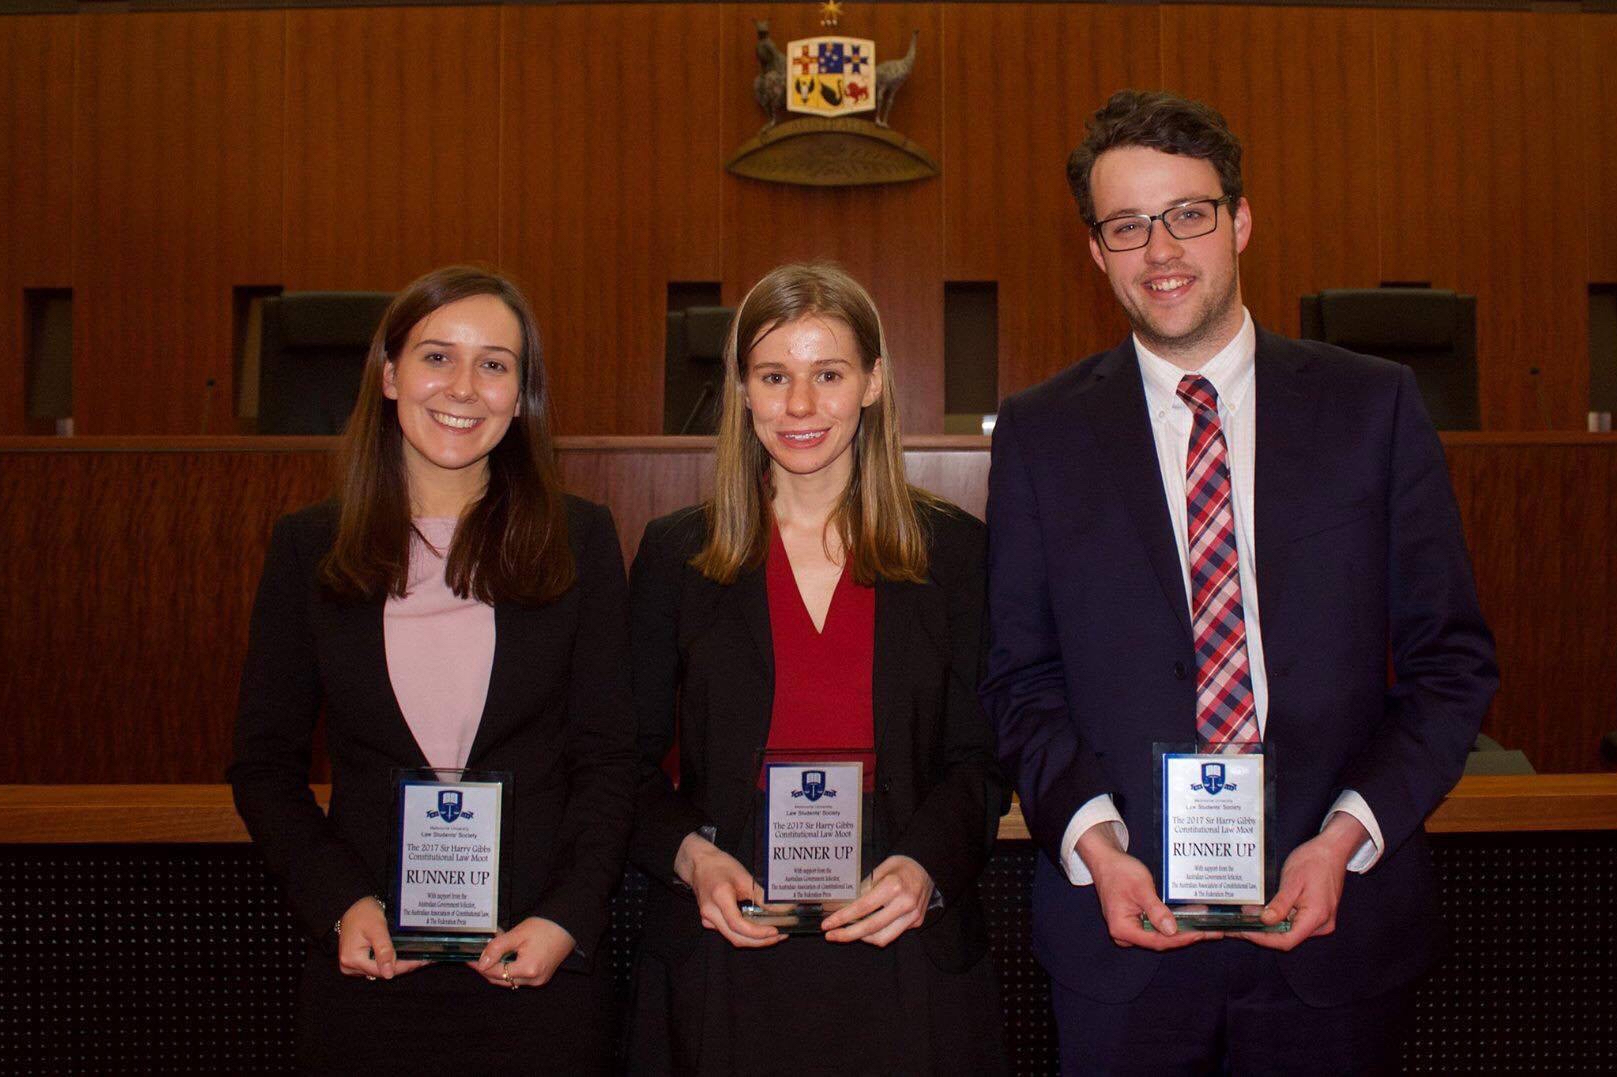 Second place in the Sir Harry Gibbs Constitutional Law Moot Grand Final